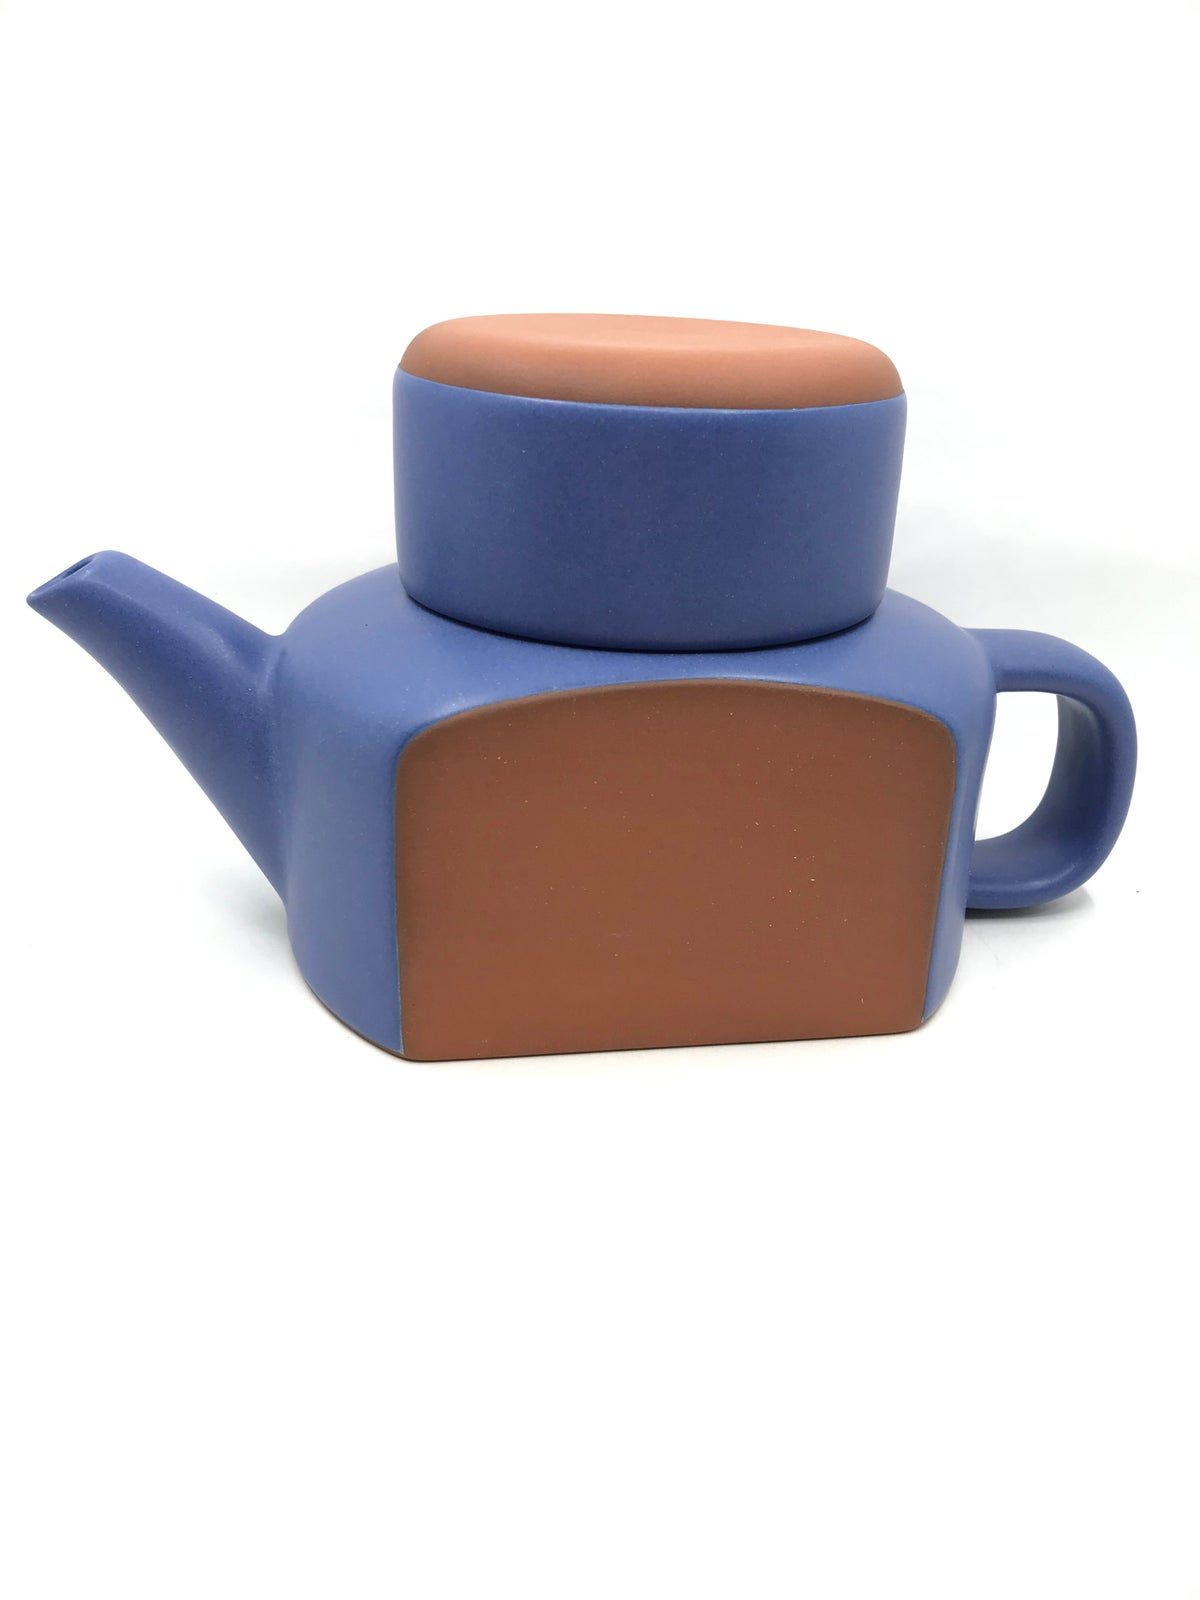 Teapot and Cup Set by Paul Eshelman